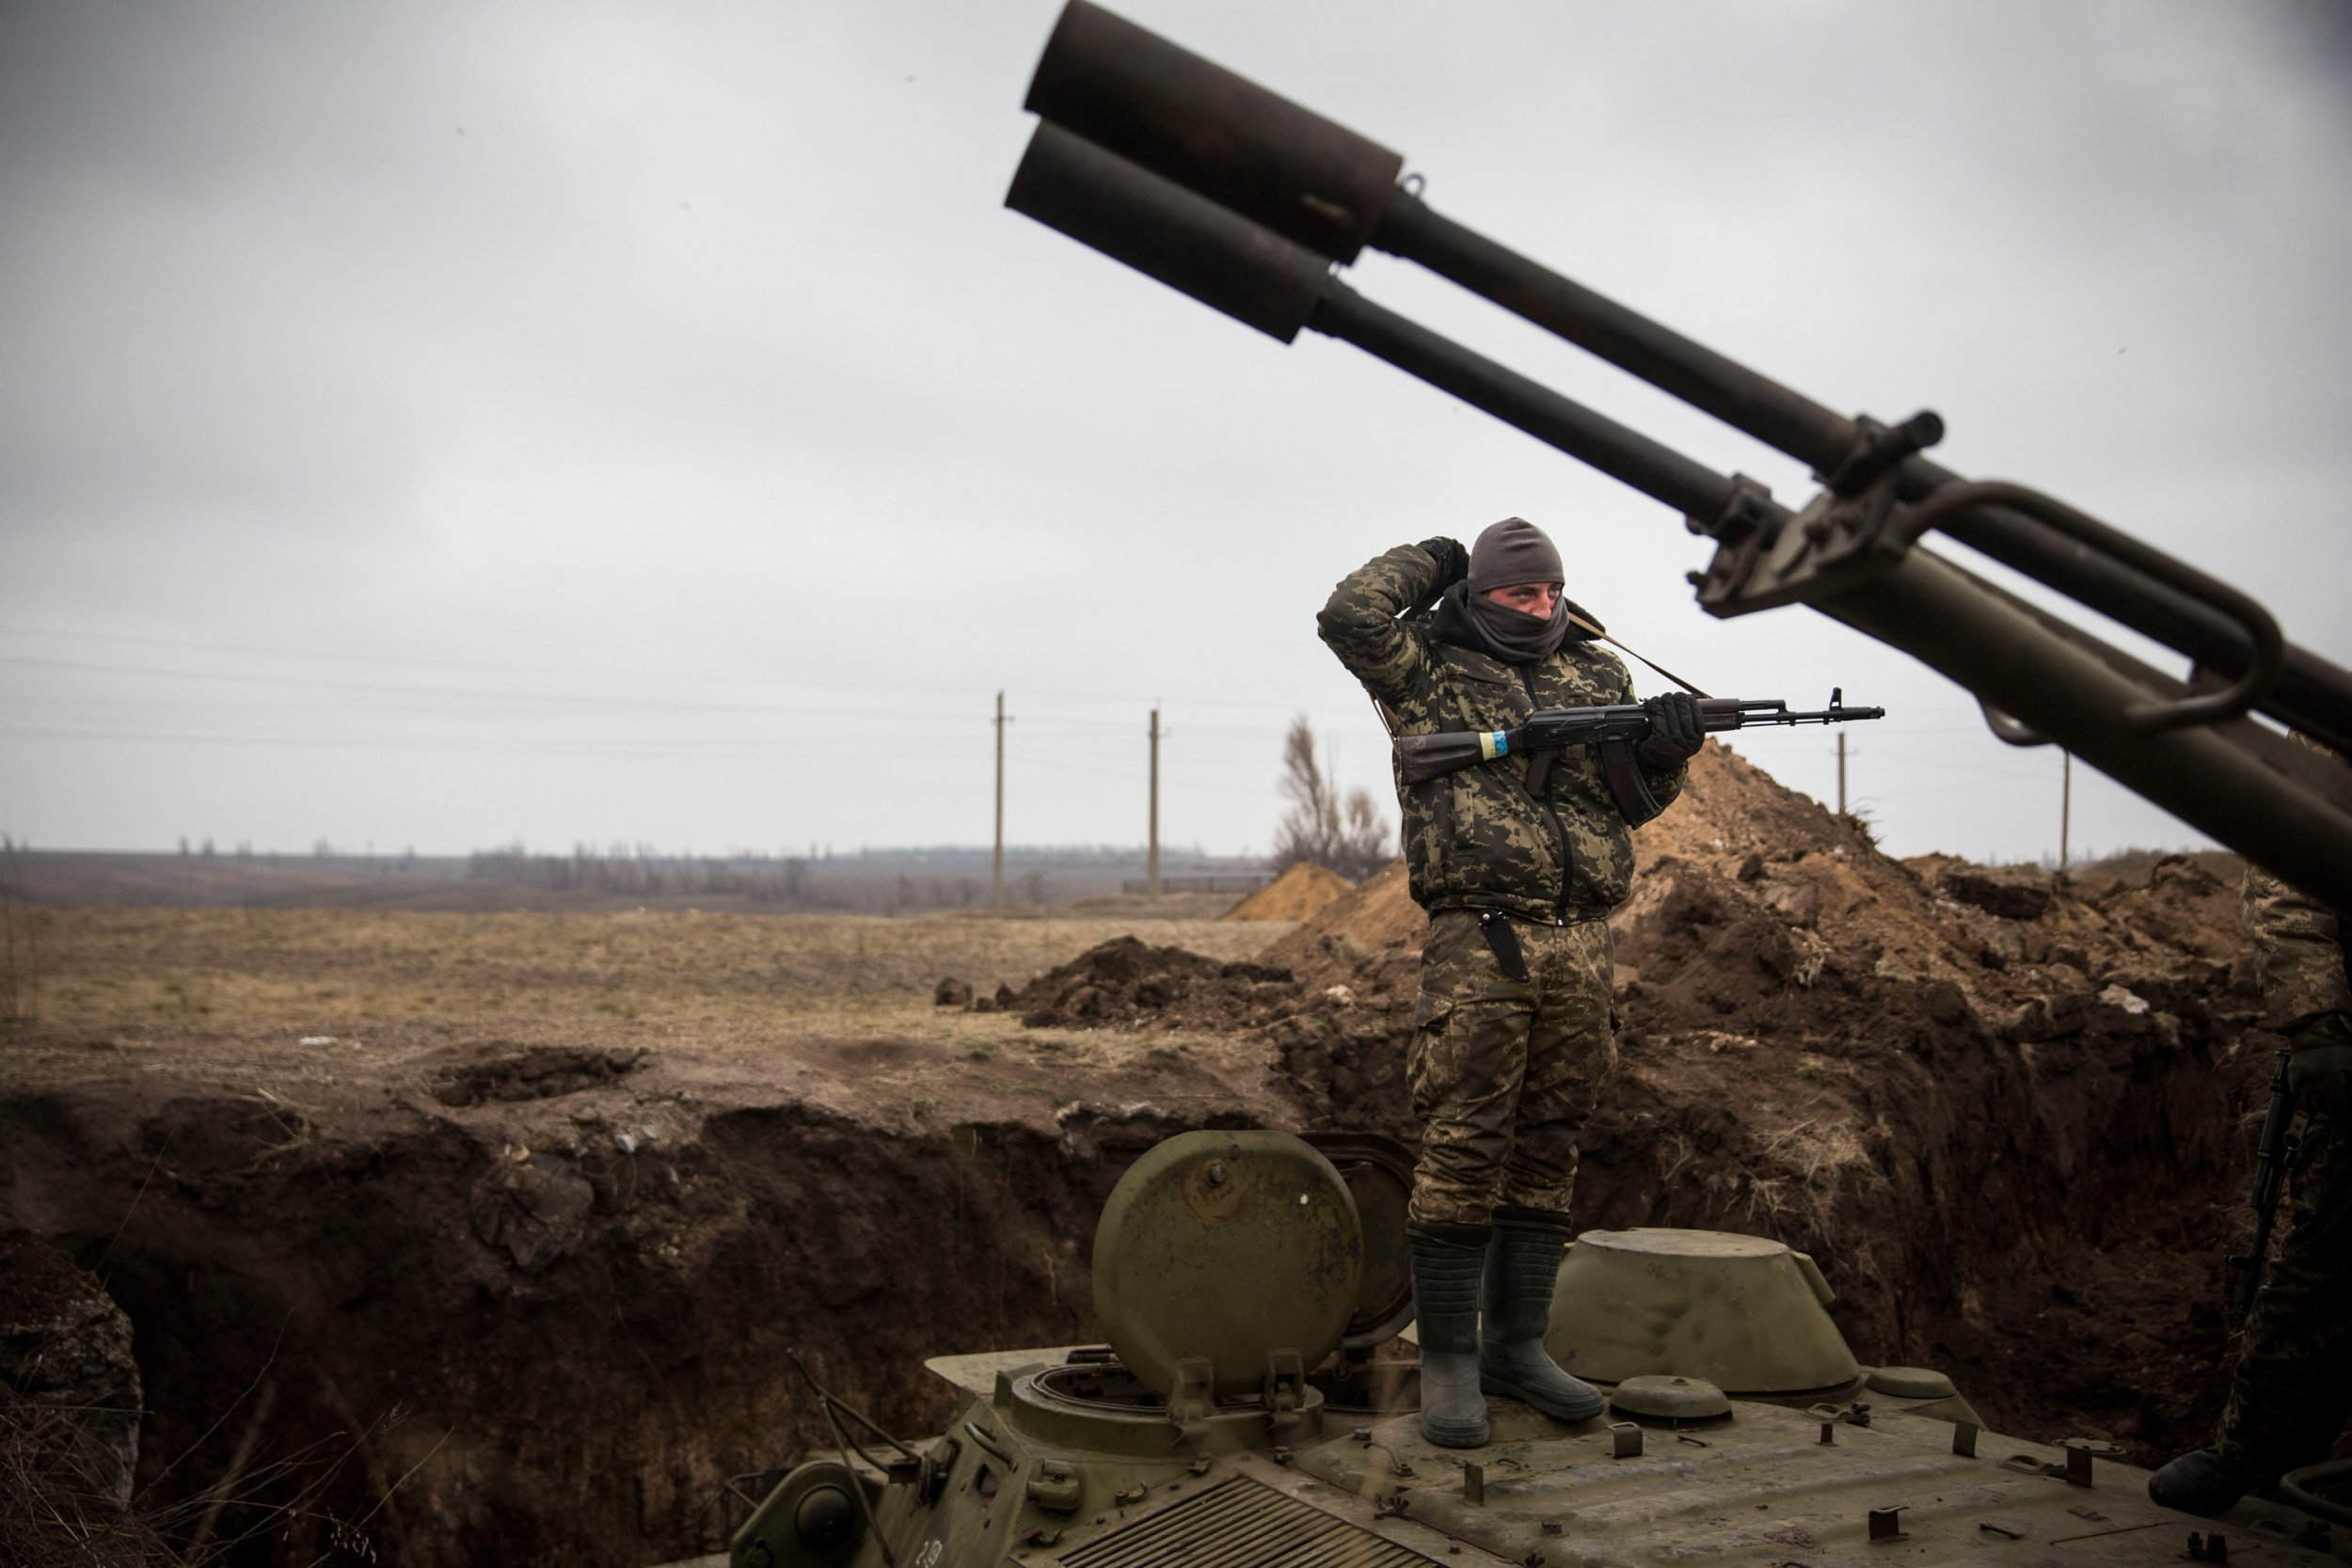 Russia-Backed Forces Could Face Armed Ground Robots in Ukraine Conflict in 2018